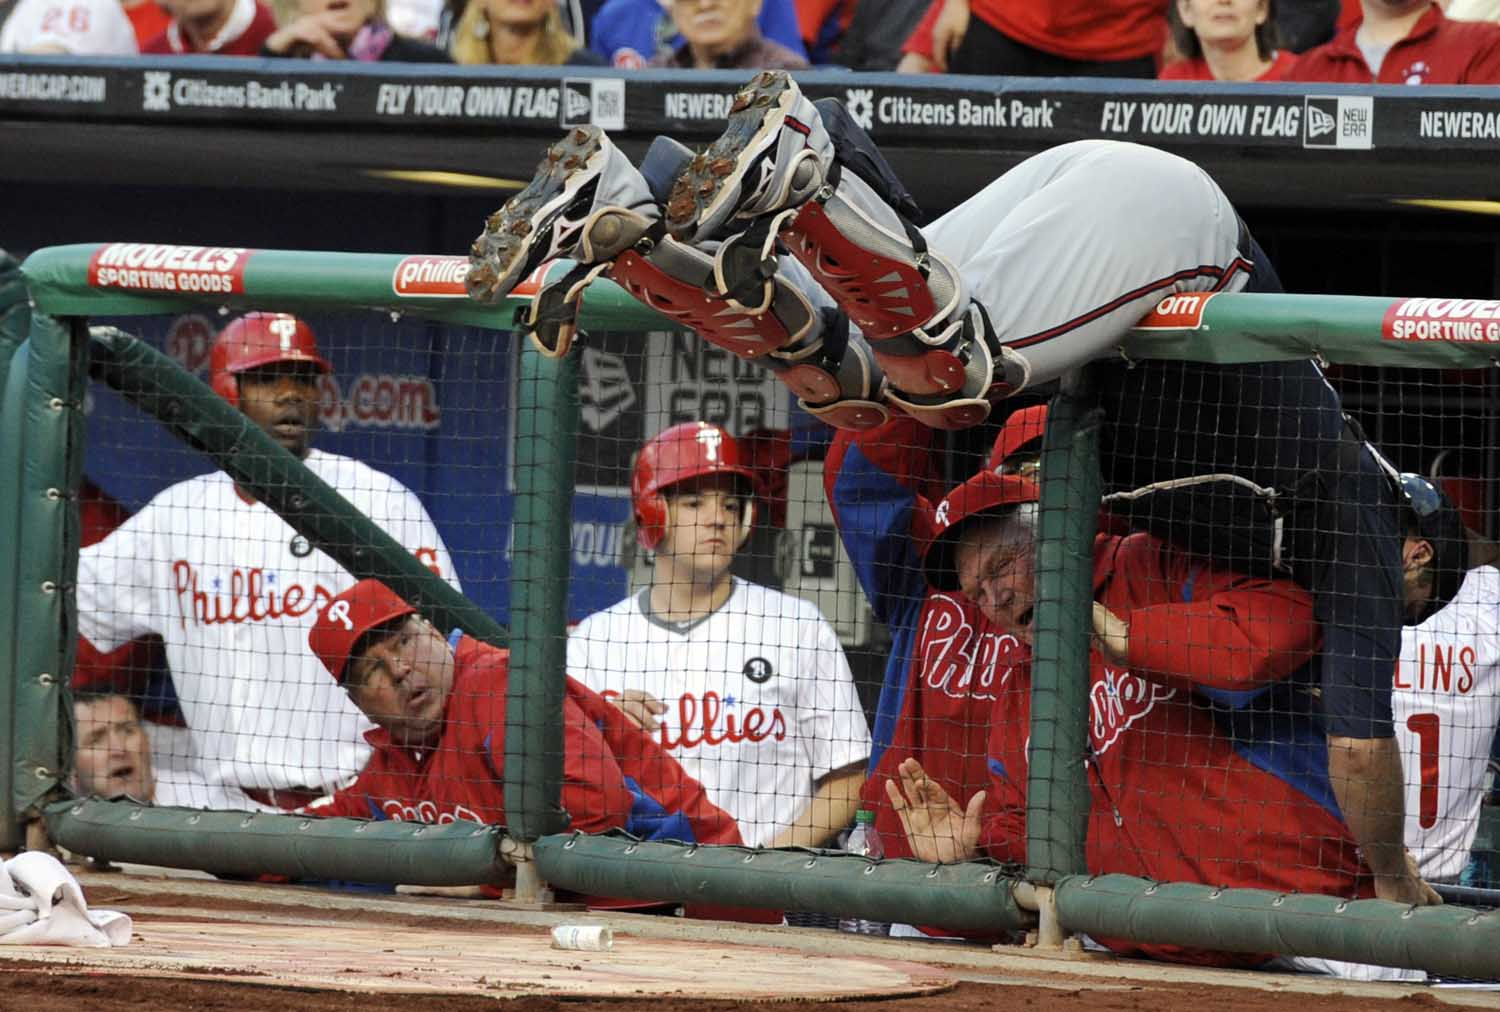 Atlanta Braves catcher Brian McCann falls over the dugout rail and over Philadelphia Phillies manager Charlie Manuel while trying to catch a foul ball hit by Shane Victorino during the first inning.